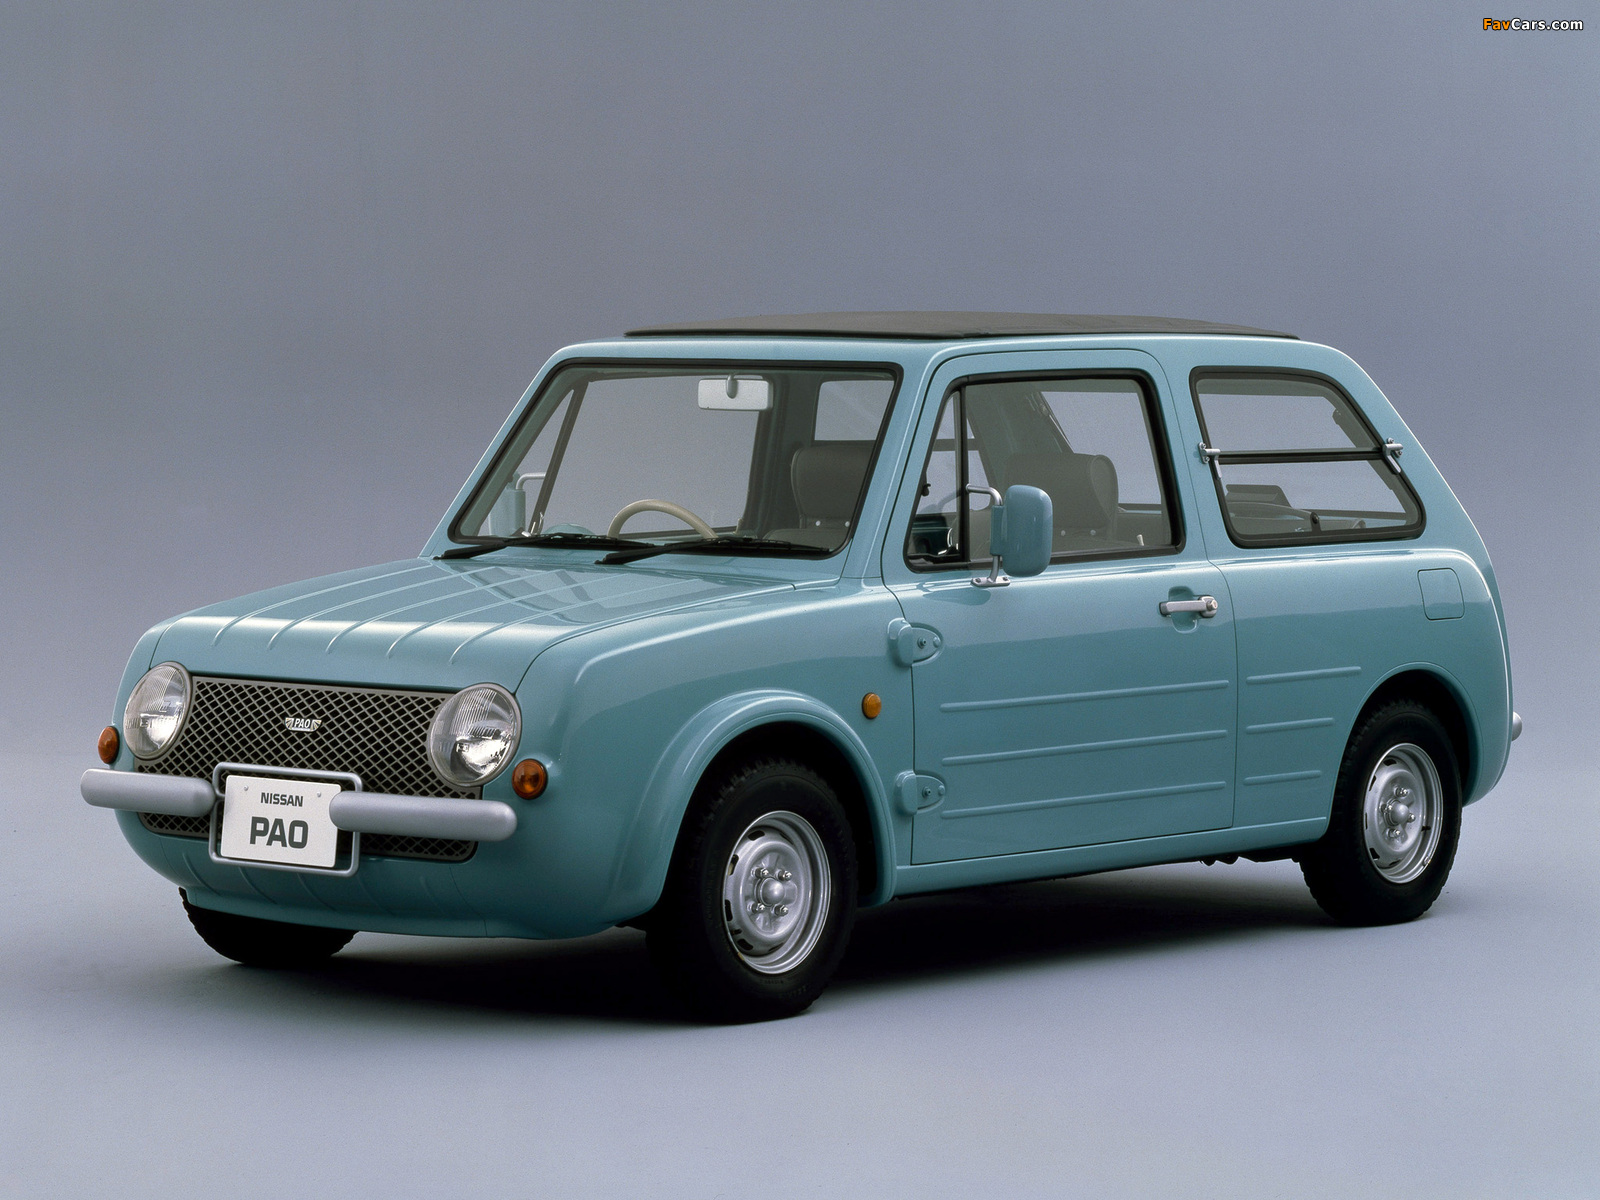 Nissan Pao Concept 1987 pictures (1600 x 1200)